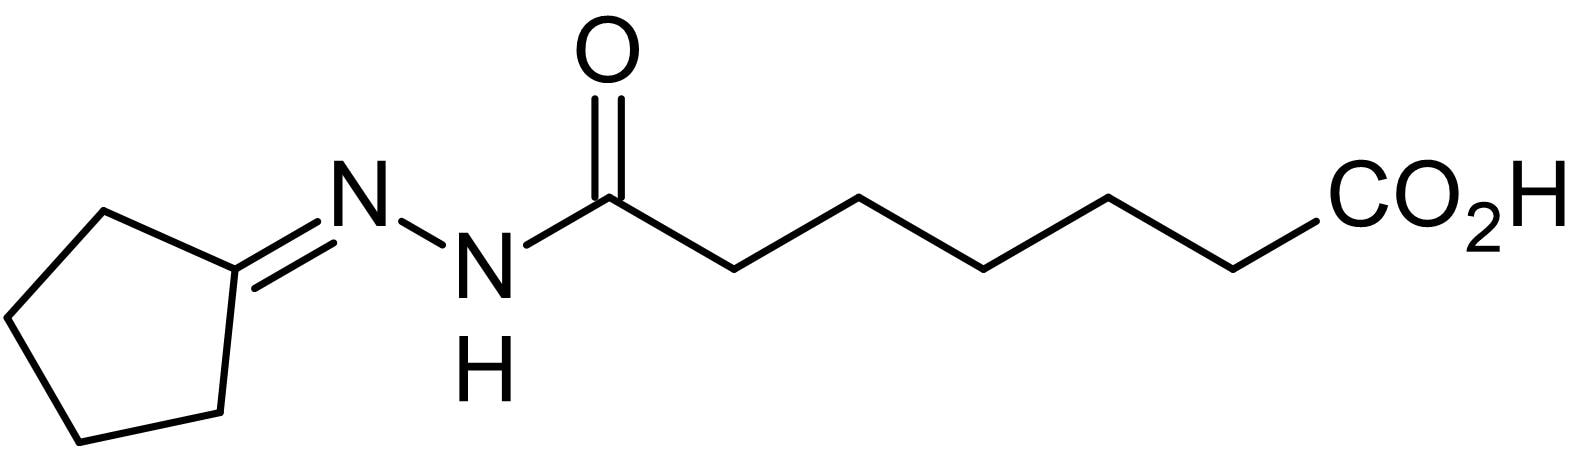 Chemical Structure - IDE 2, endoderm formation inducer (ab145223)